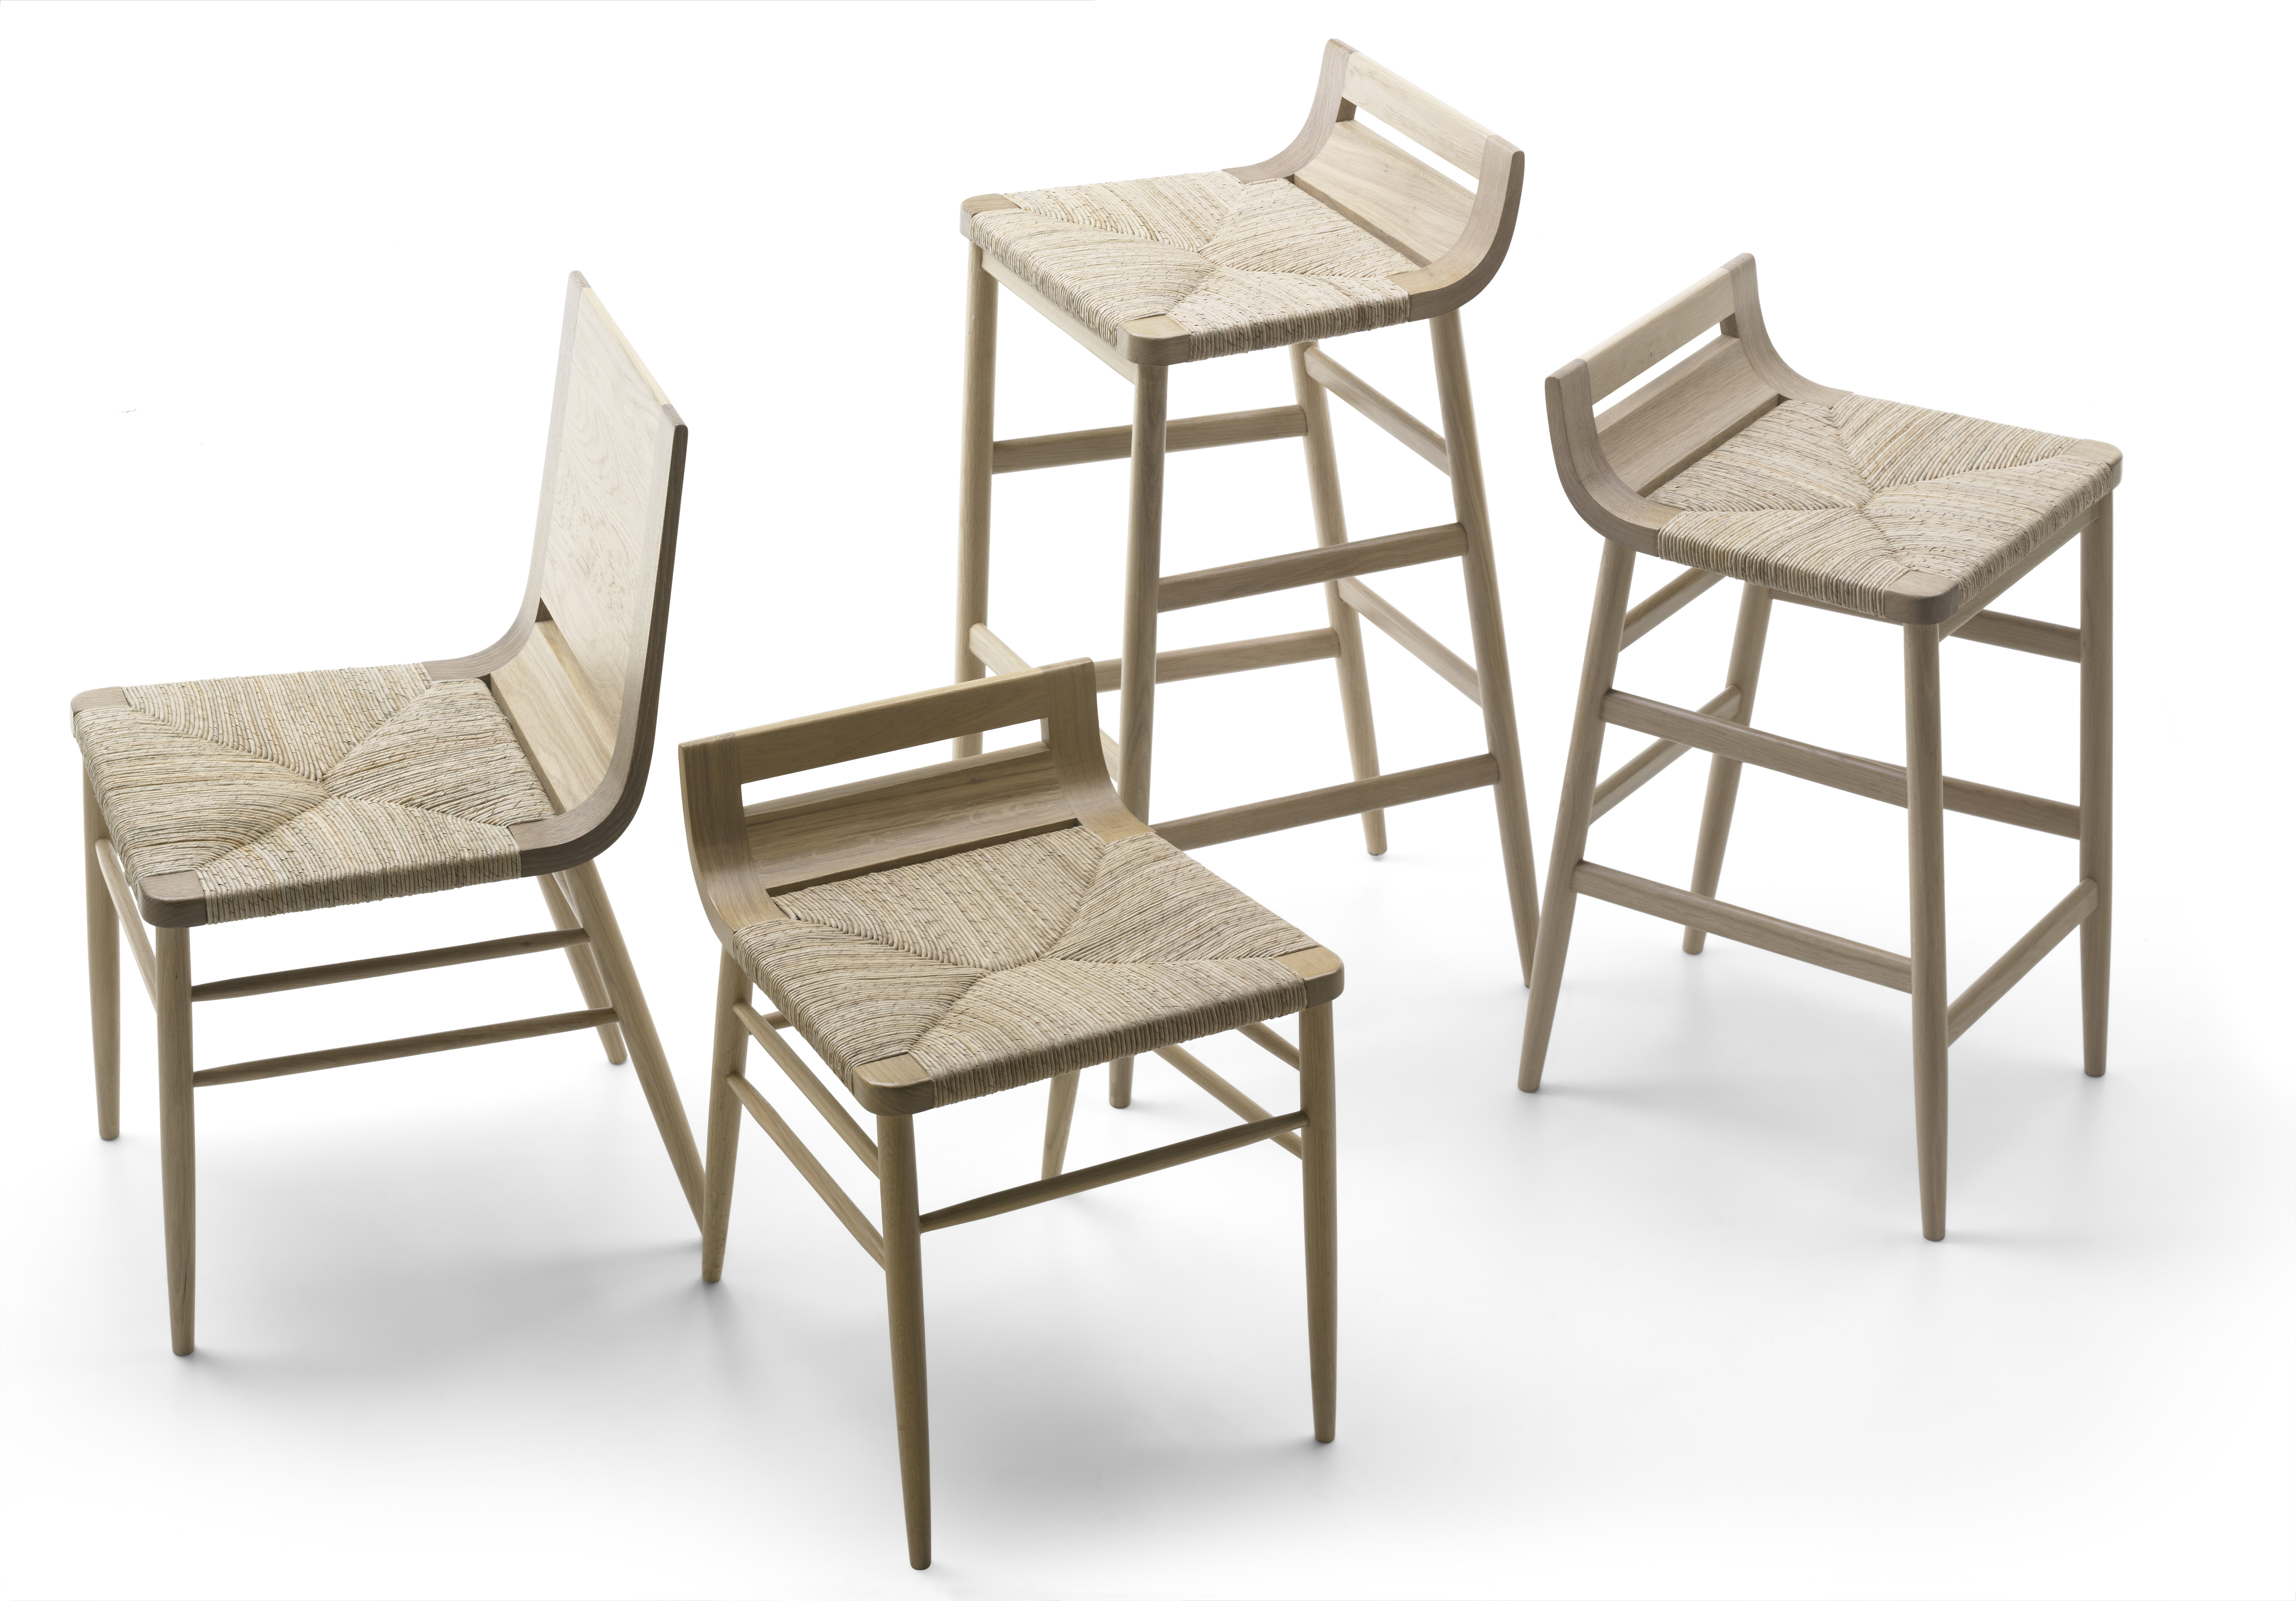 tabouret de bar kimua h 80 cm bois assise paille ch ne naturel alki. Black Bedroom Furniture Sets. Home Design Ideas